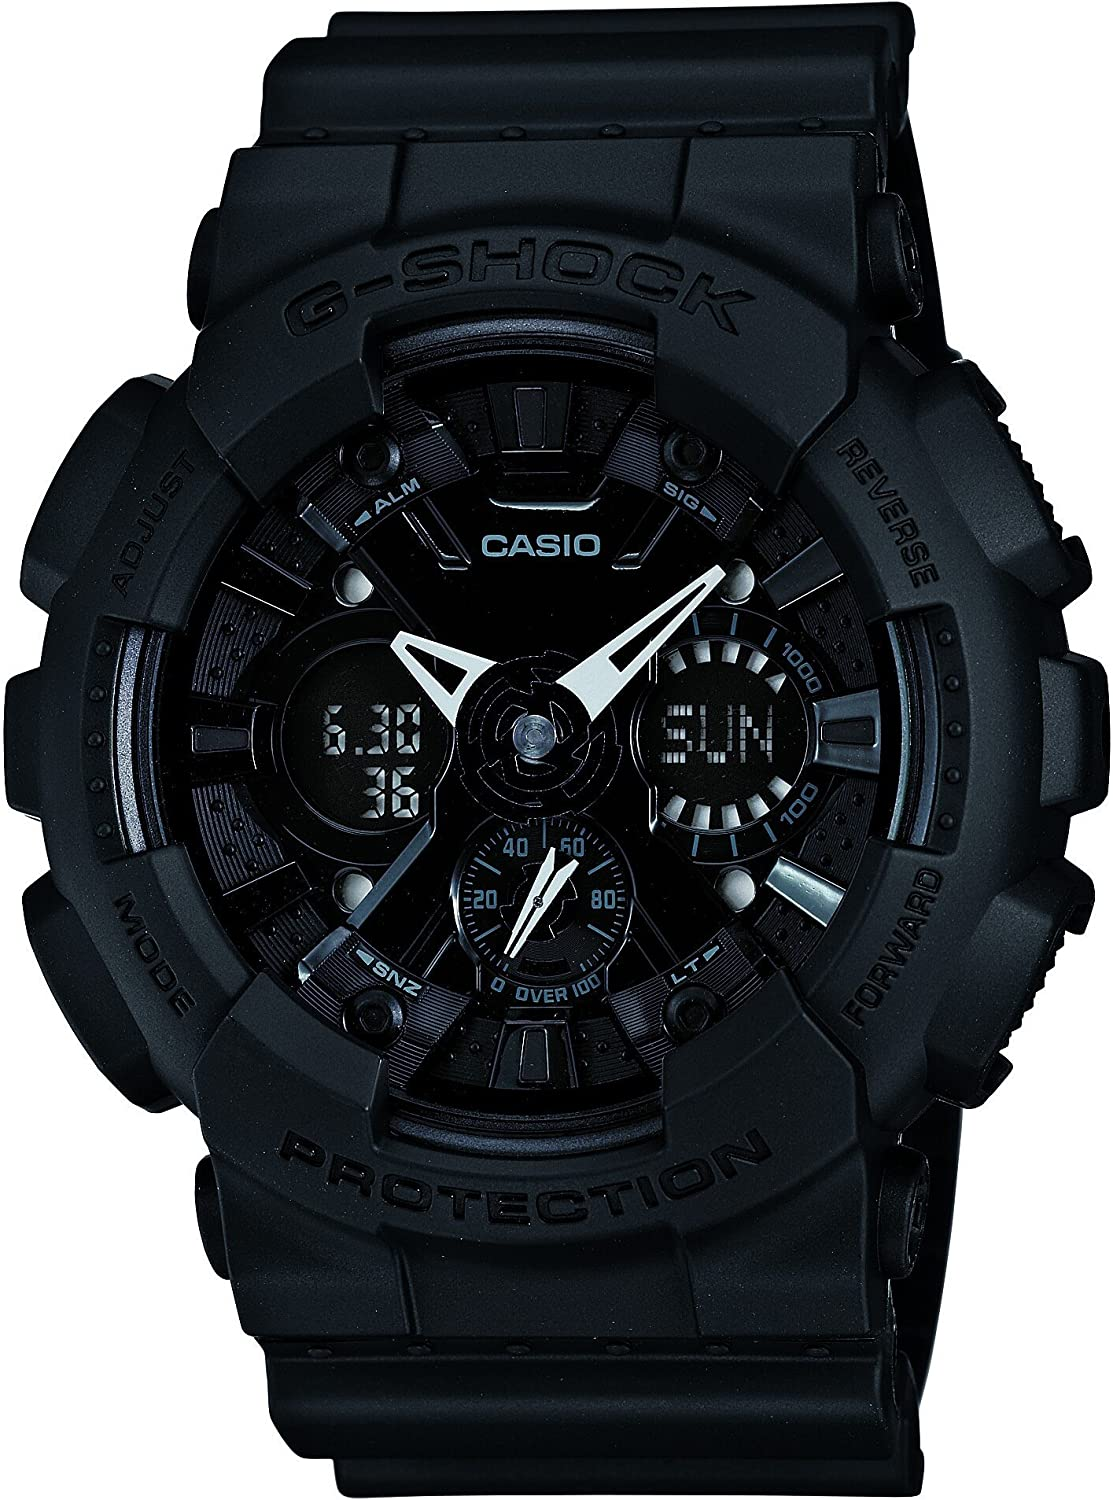 CASIO G-SHOCK Solid Colores Limited Edition GA-120BB-1AJF Japan Import